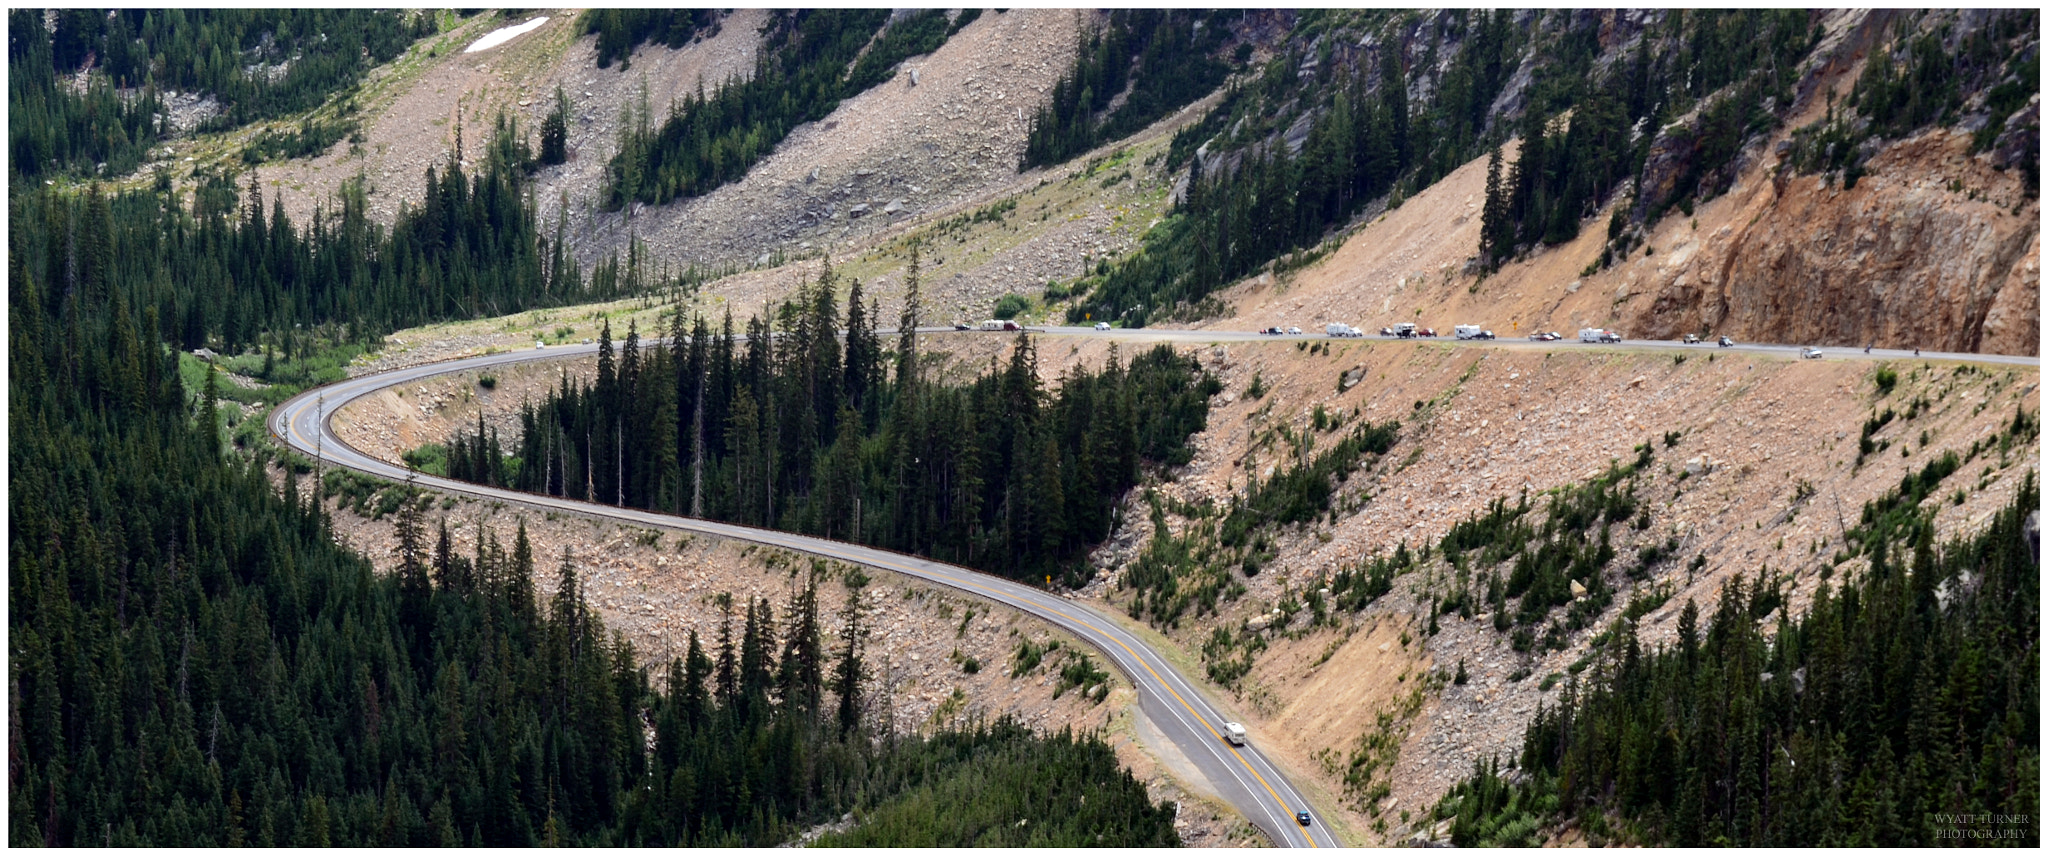 Photograph HWY 20 Washington State by Wyatt Turner on 500px